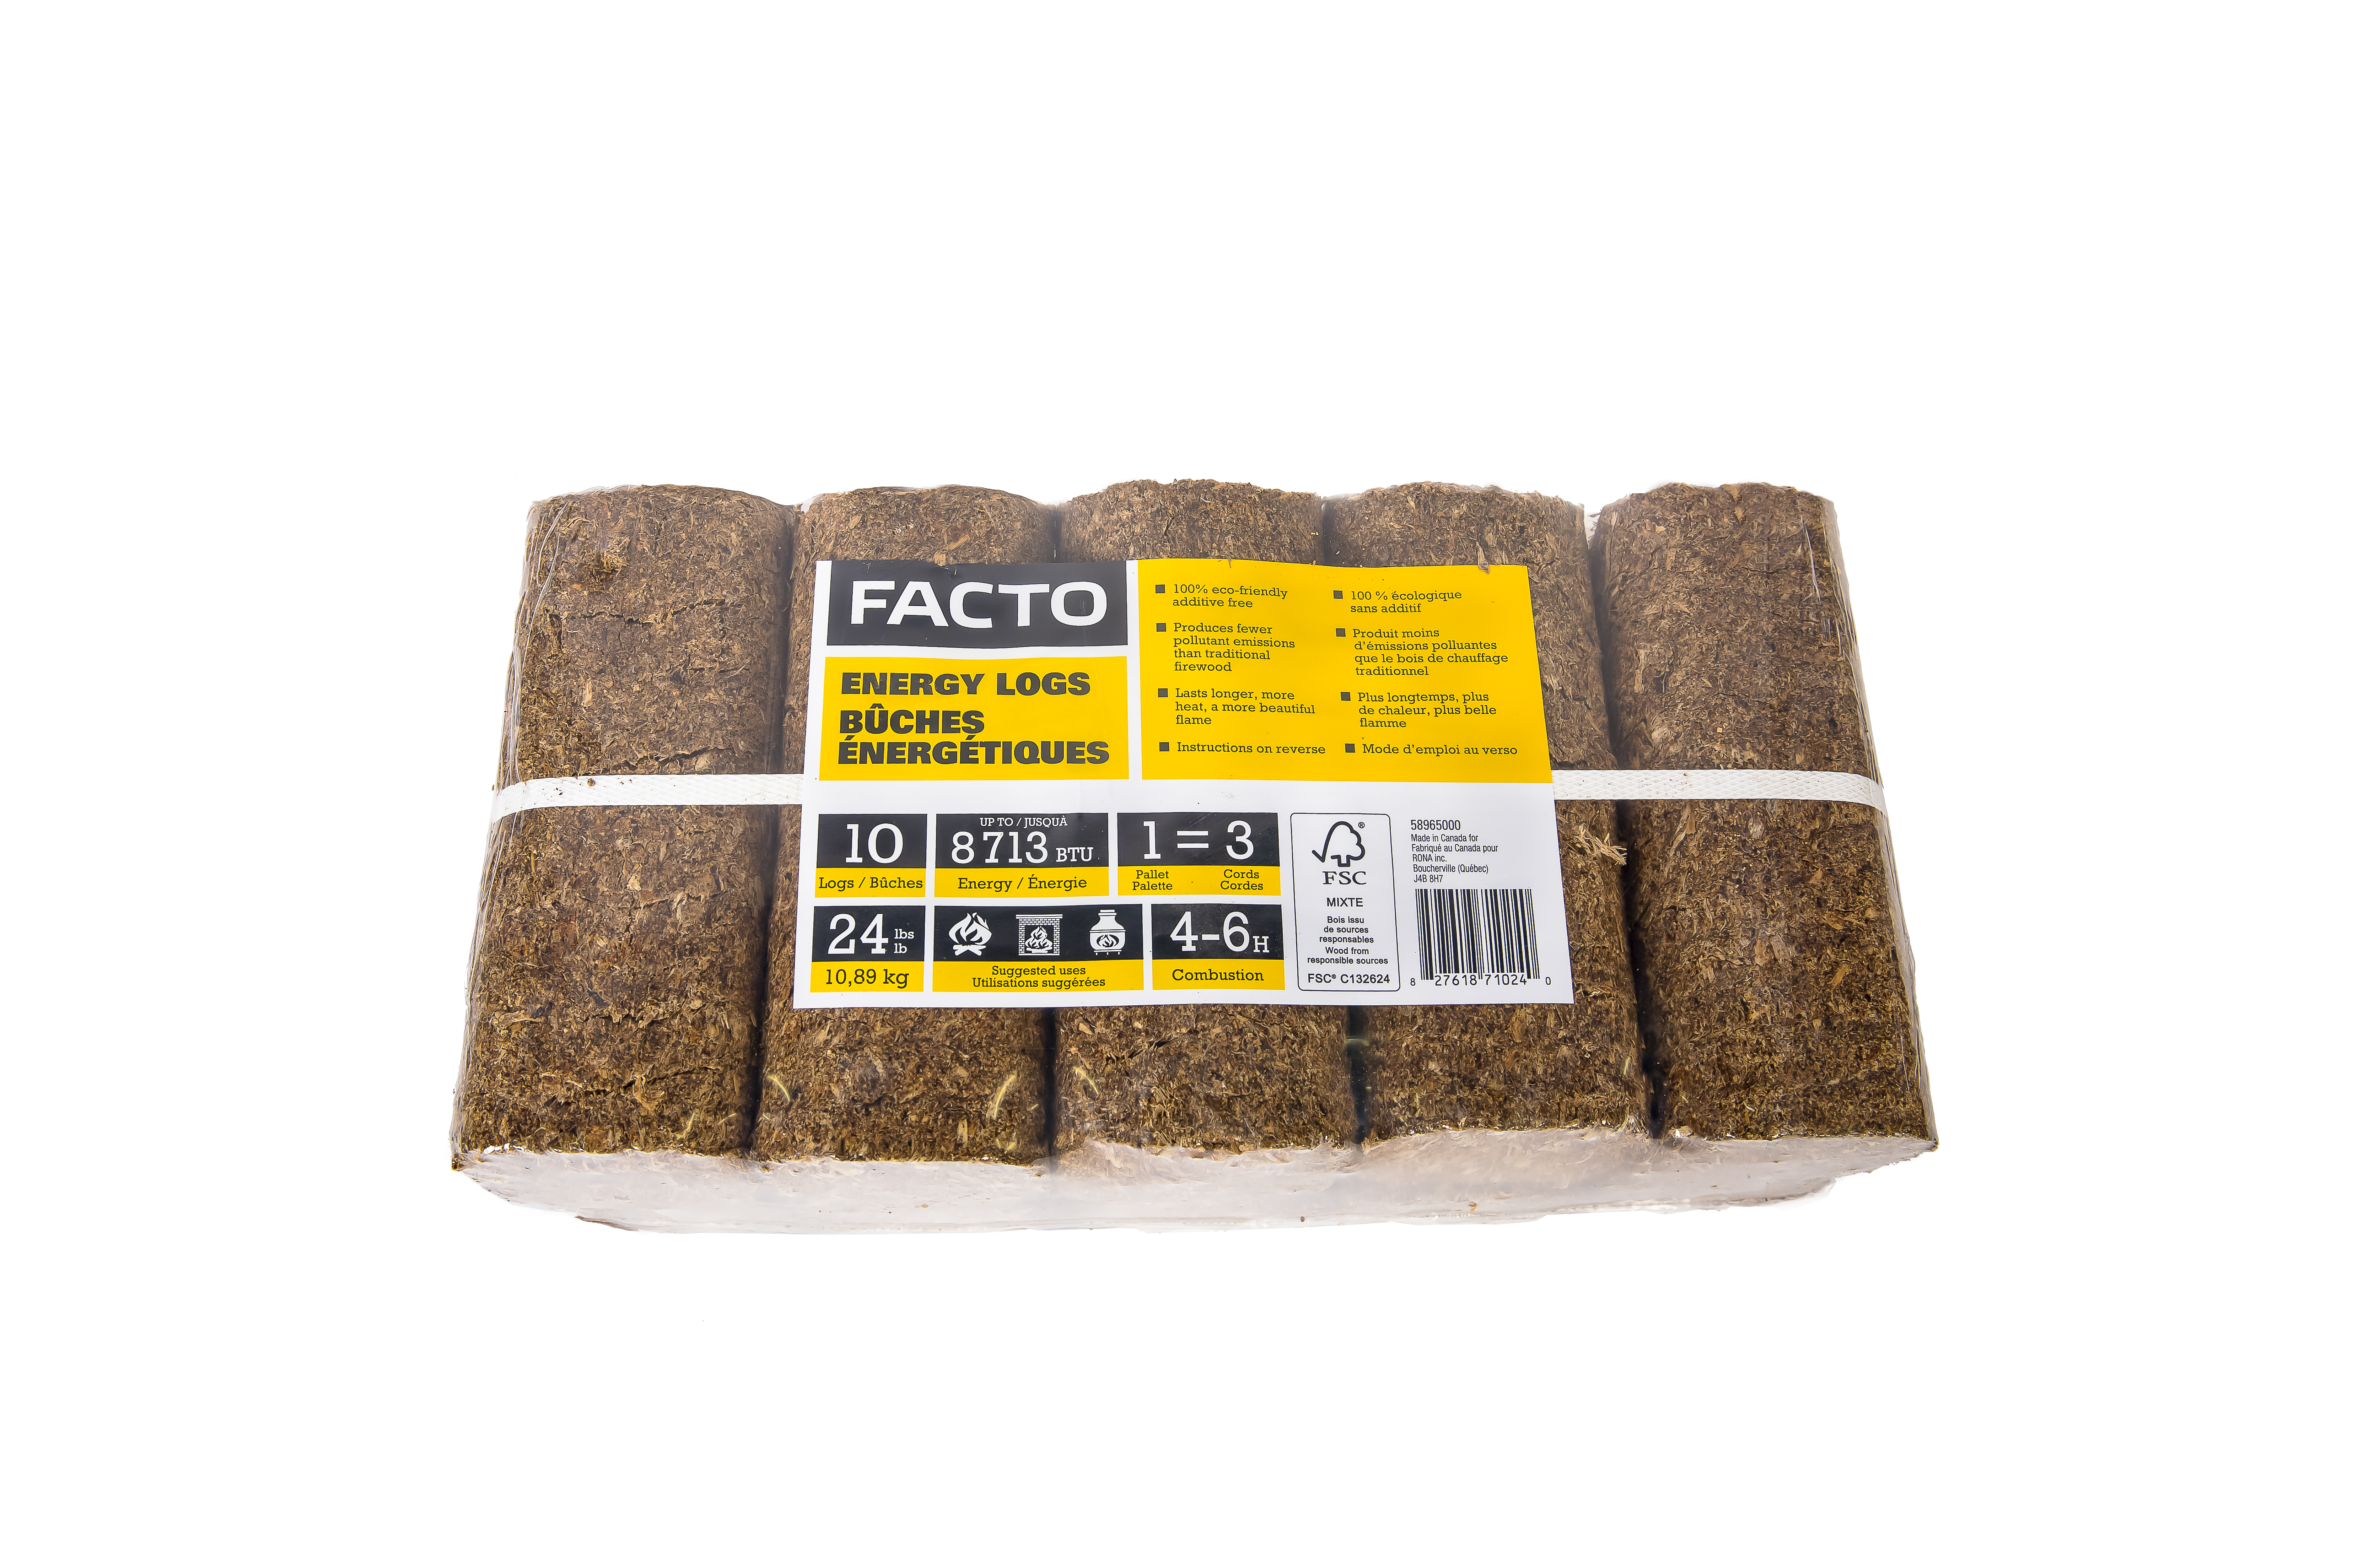 FACTO Ecological Logs - 2.4 lbs - Densified Wood - 10-Pack